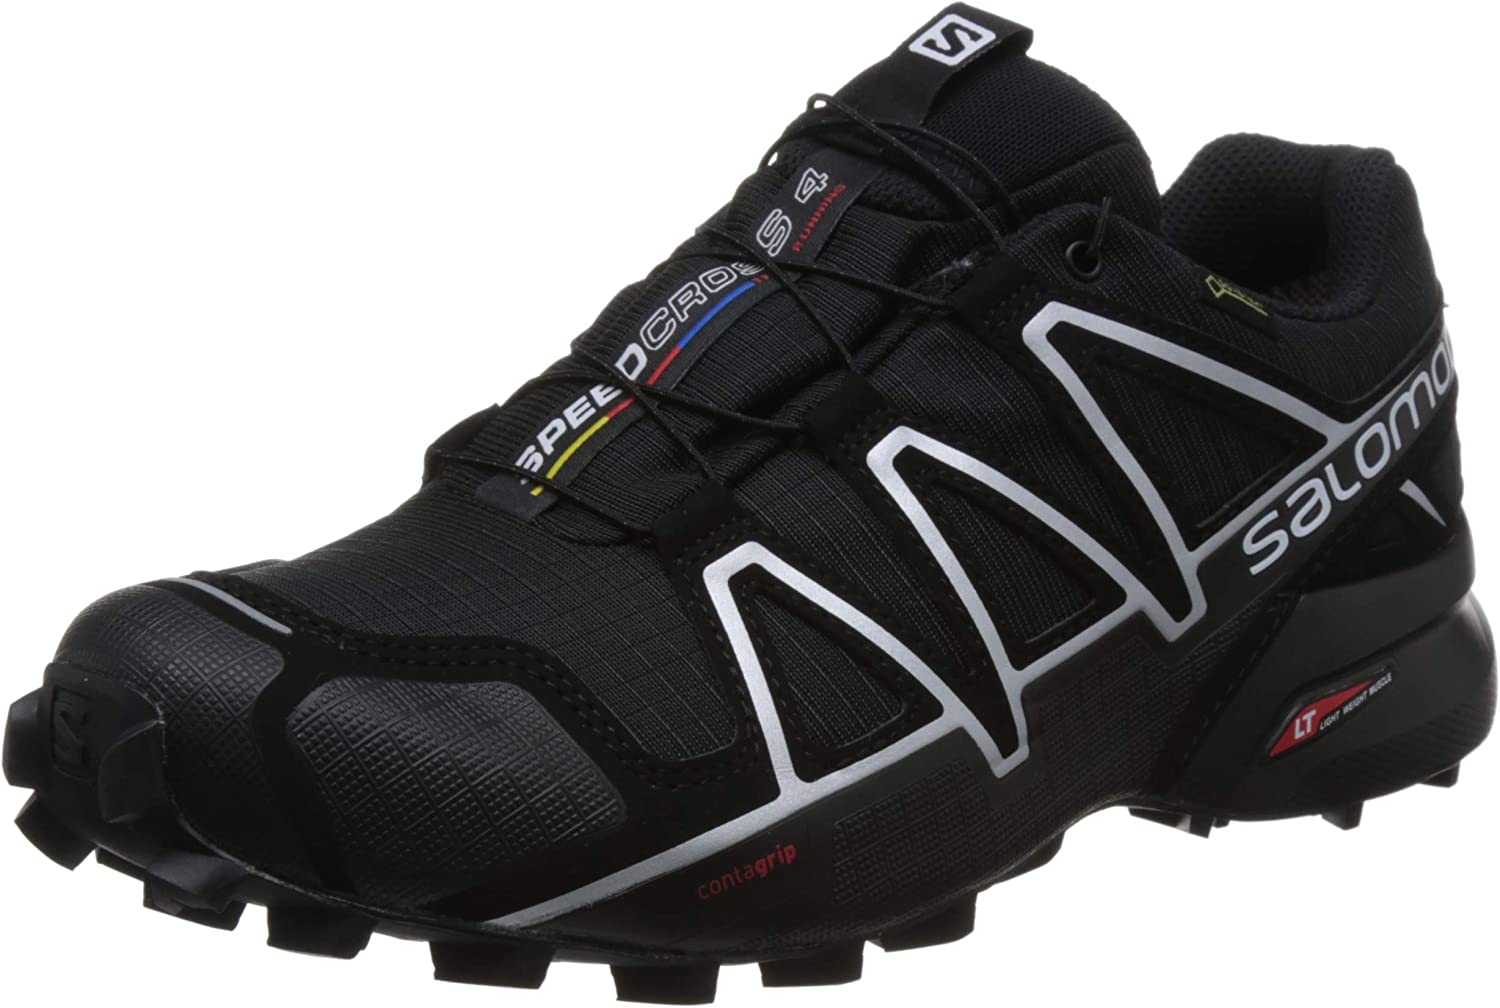 SALOMON Speedcross 4 GTX, Zapatillas de Trail Running para Hombre